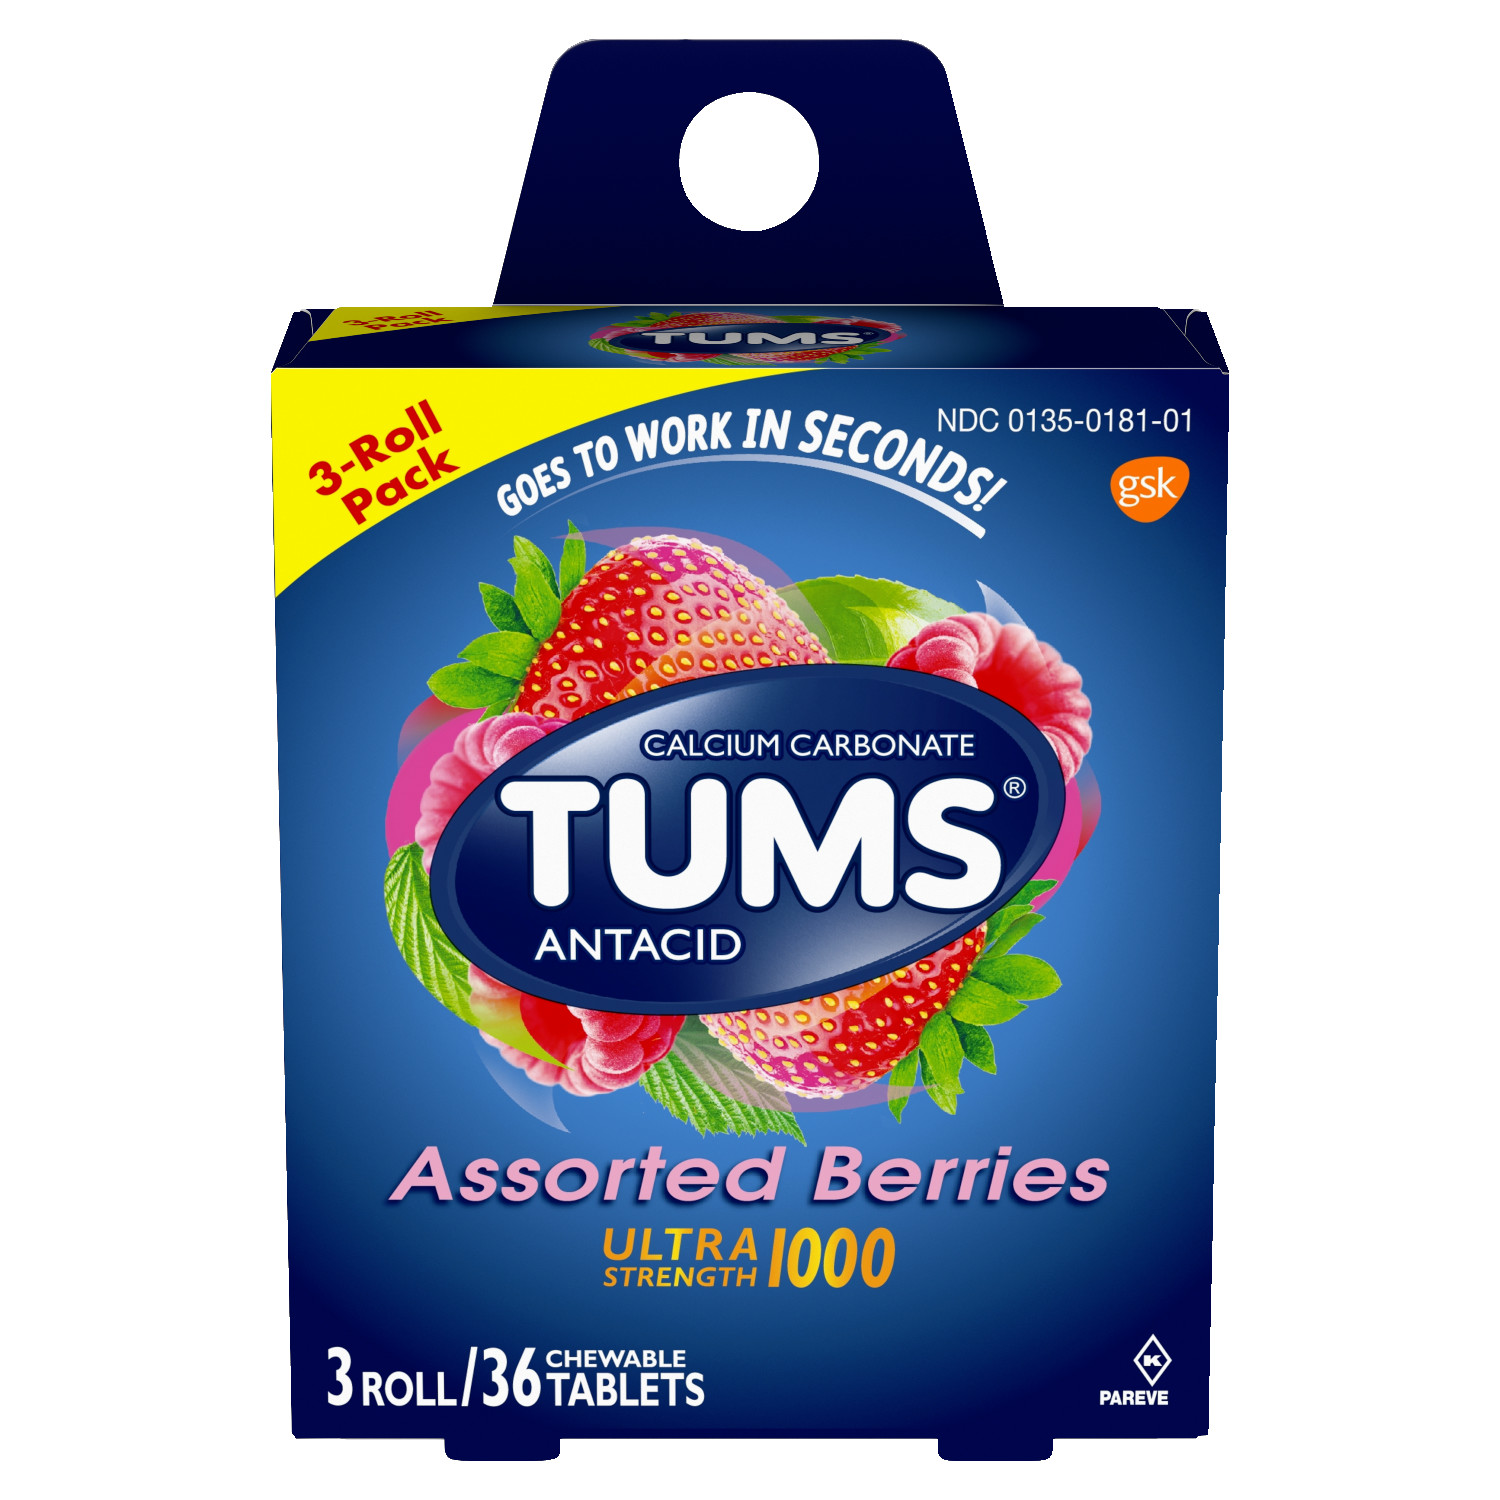 TUMS Antacid Chewable Tablets, Ultra Strength for Heartburn Relief, Assorted Berries, 3 rolls of 12ct